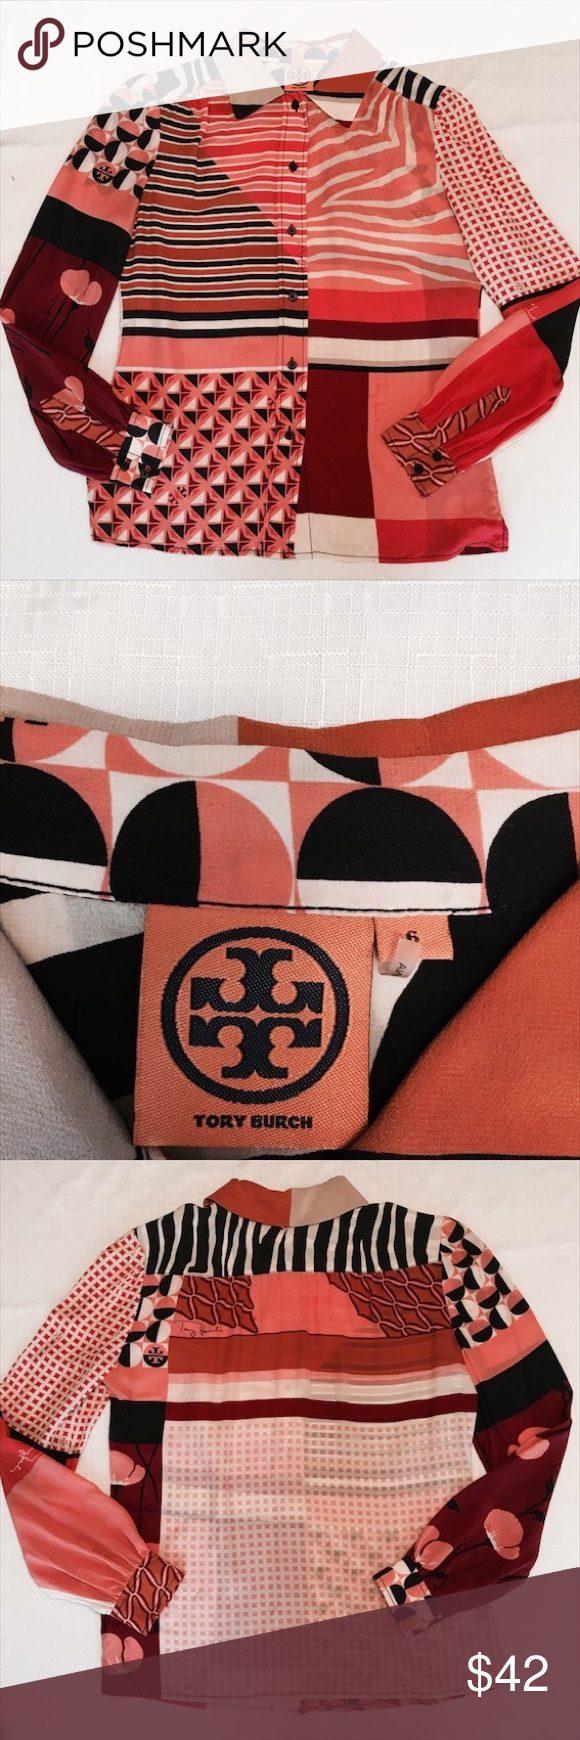 Tory Burch silk button down.  Like new. Stunning geometric print silk. Tory Burch Tops Button Down Shirts